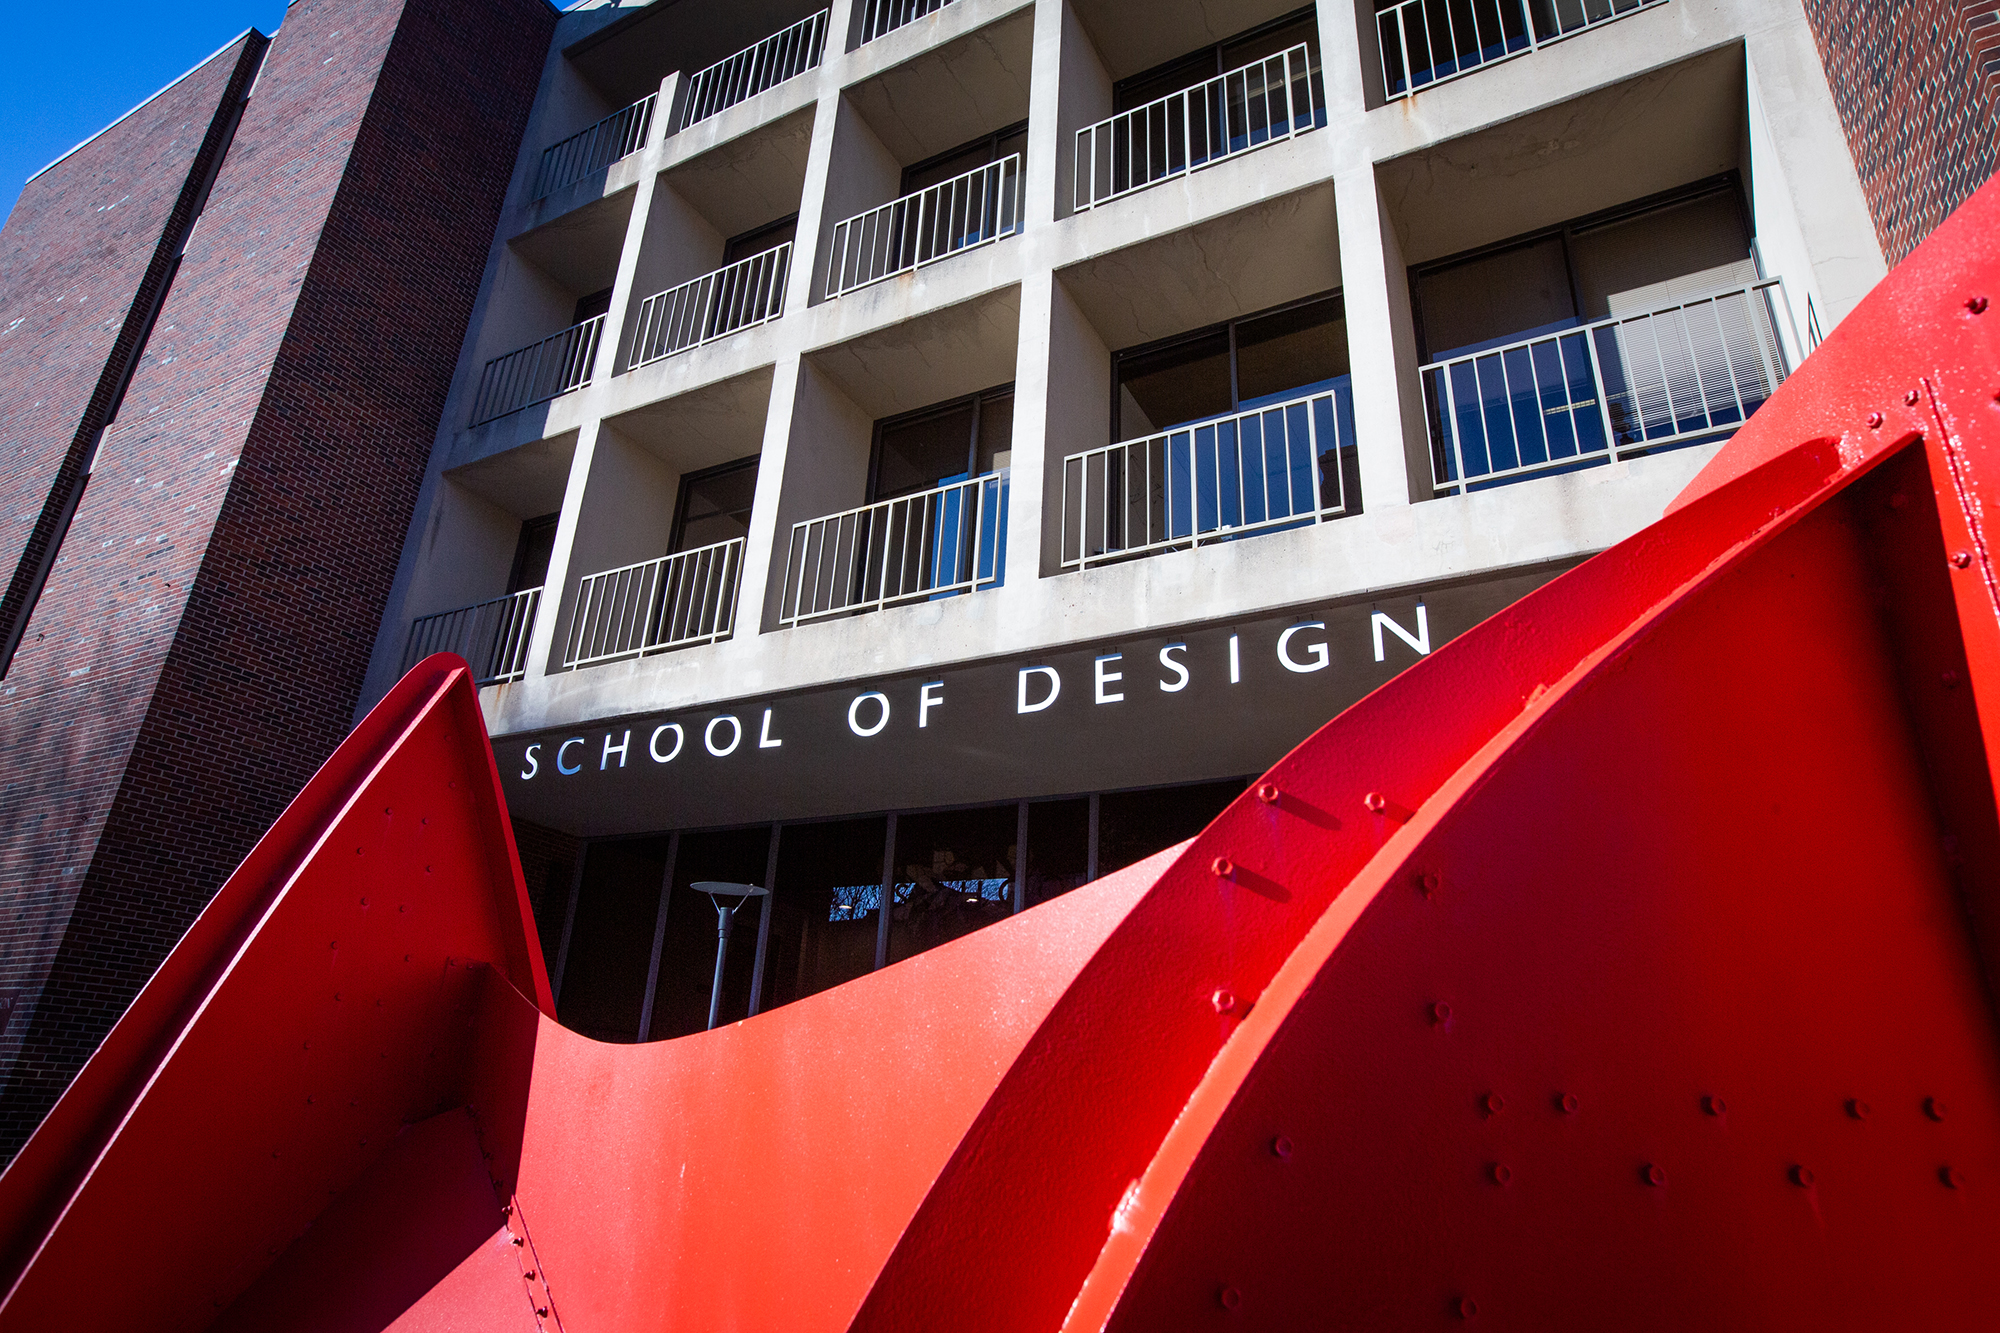 University of Pennsylvania names School of Design in